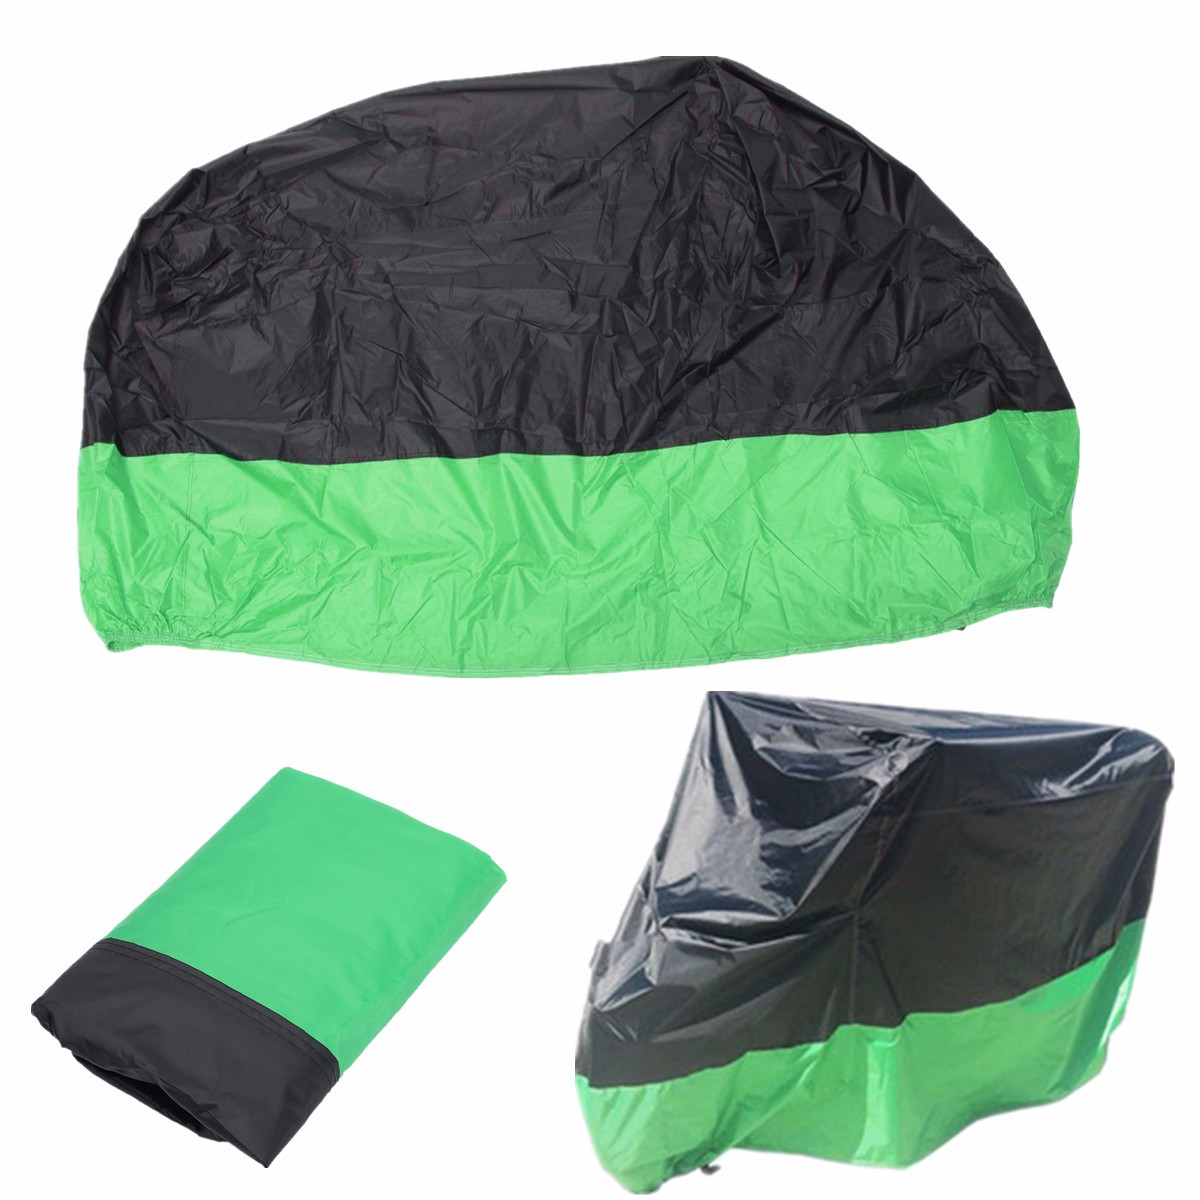 Book Cover Black Xl : Motorcycle waterproof cover scooter rain dust green